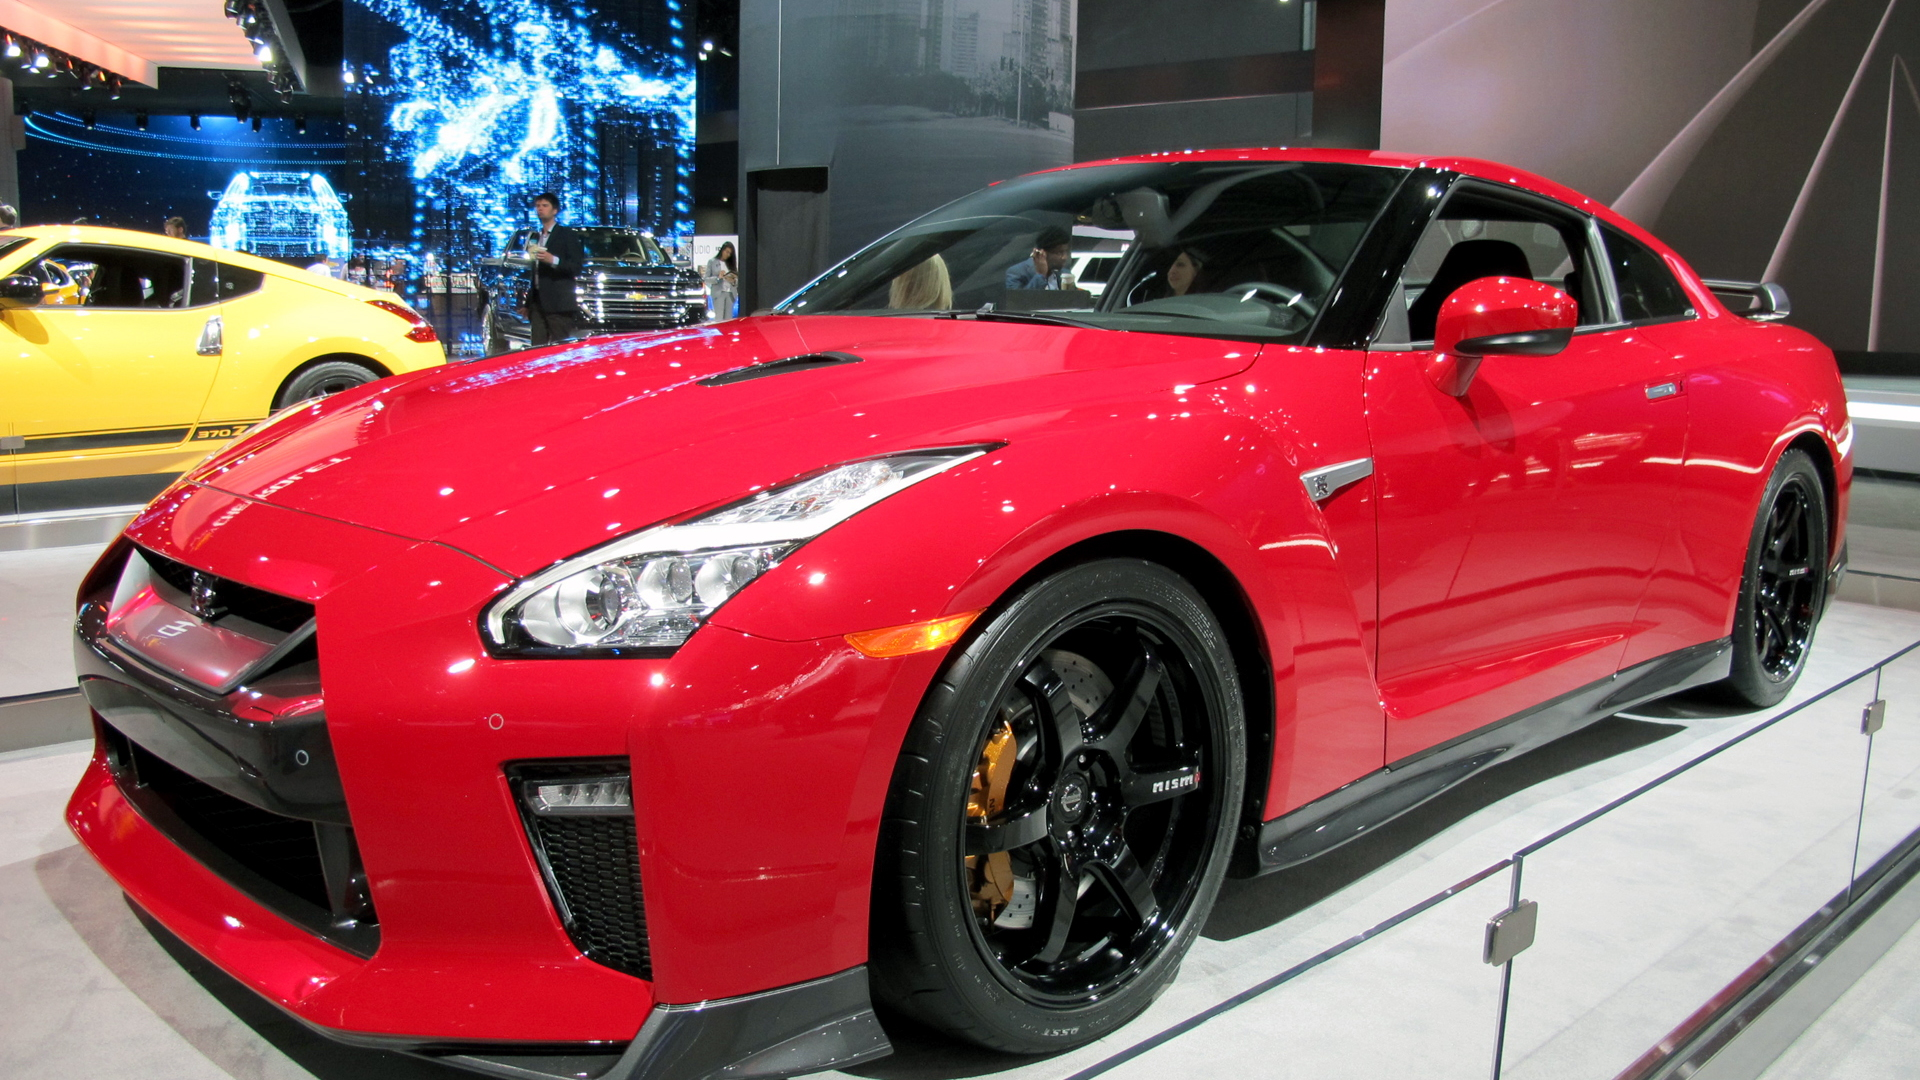 2017 Nissan GT-R Track Edition, 2017 New York auto show